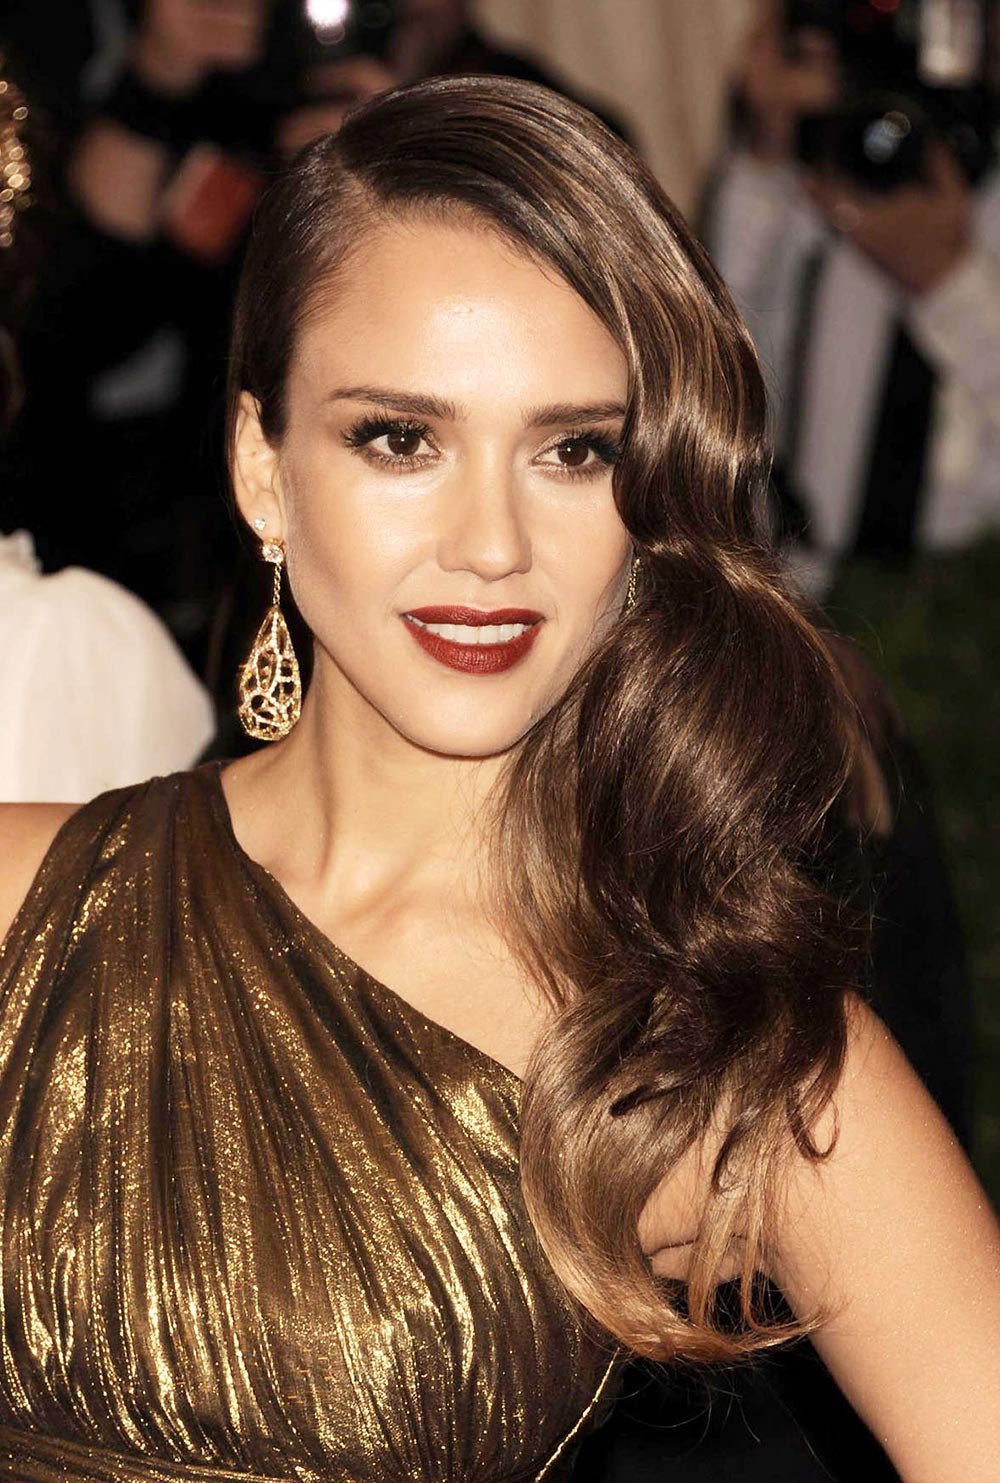 Jessica Alba hair at 2012 MET ball